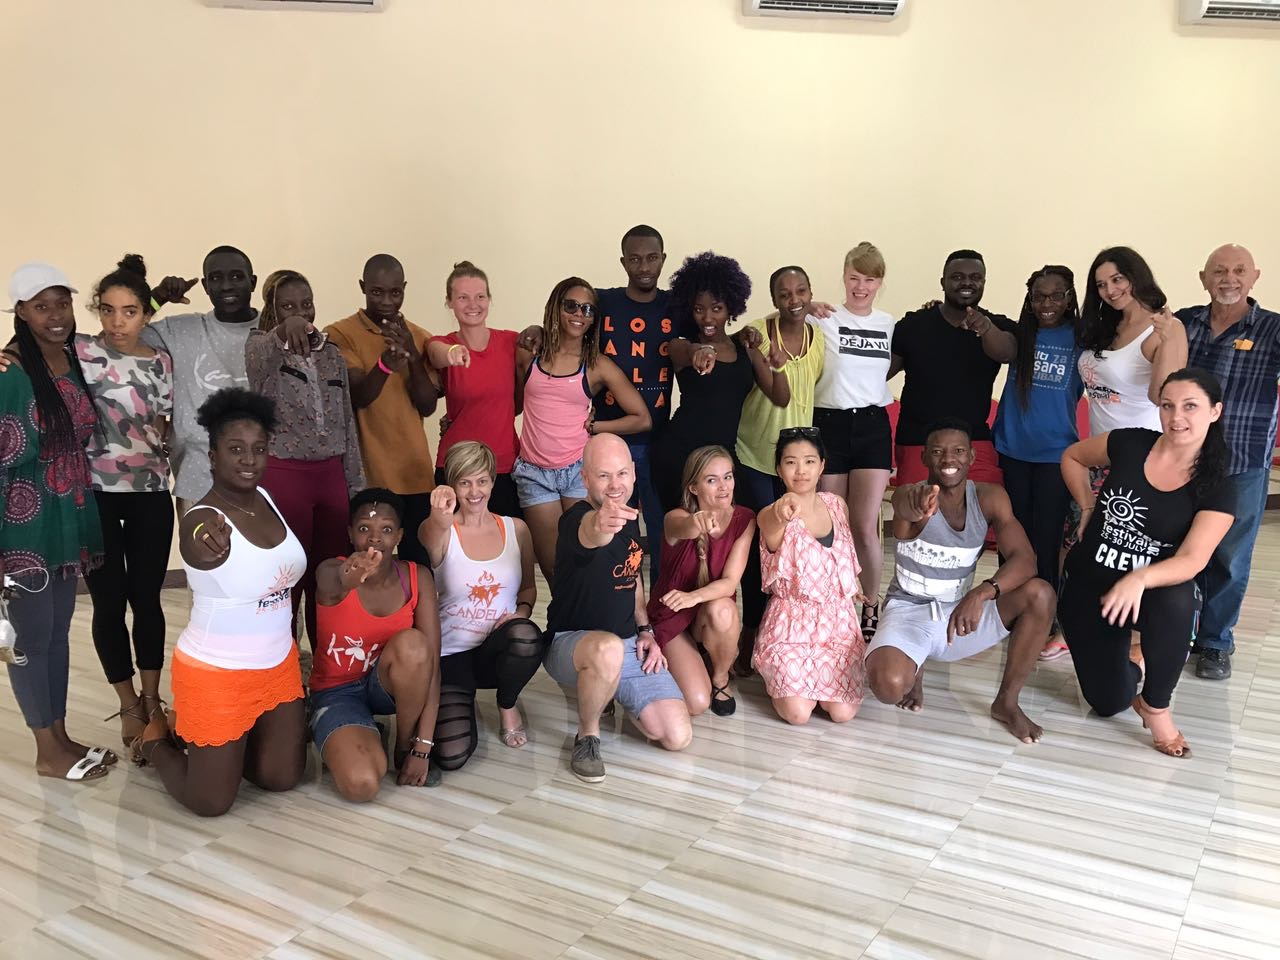 Salsa lead & follow workshop class photo - Candela Jozi & Susanna Sandell